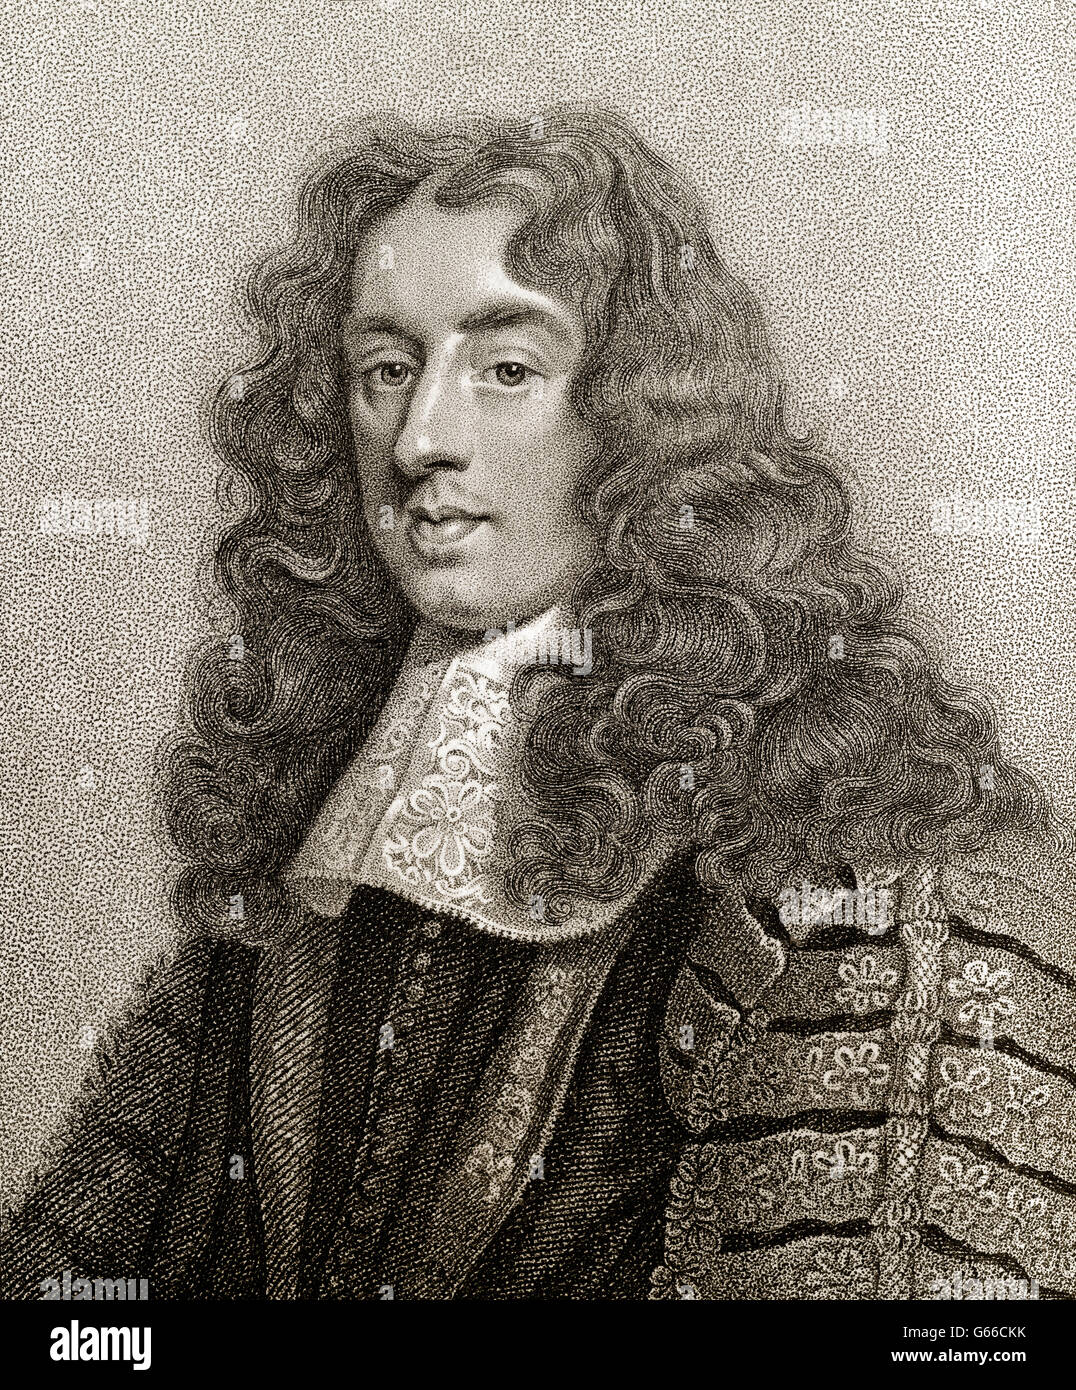 Heneage Finch, 1st Earl of Nottingham, PC, 1621-1682, Lord Chancellor of England - Stock Image